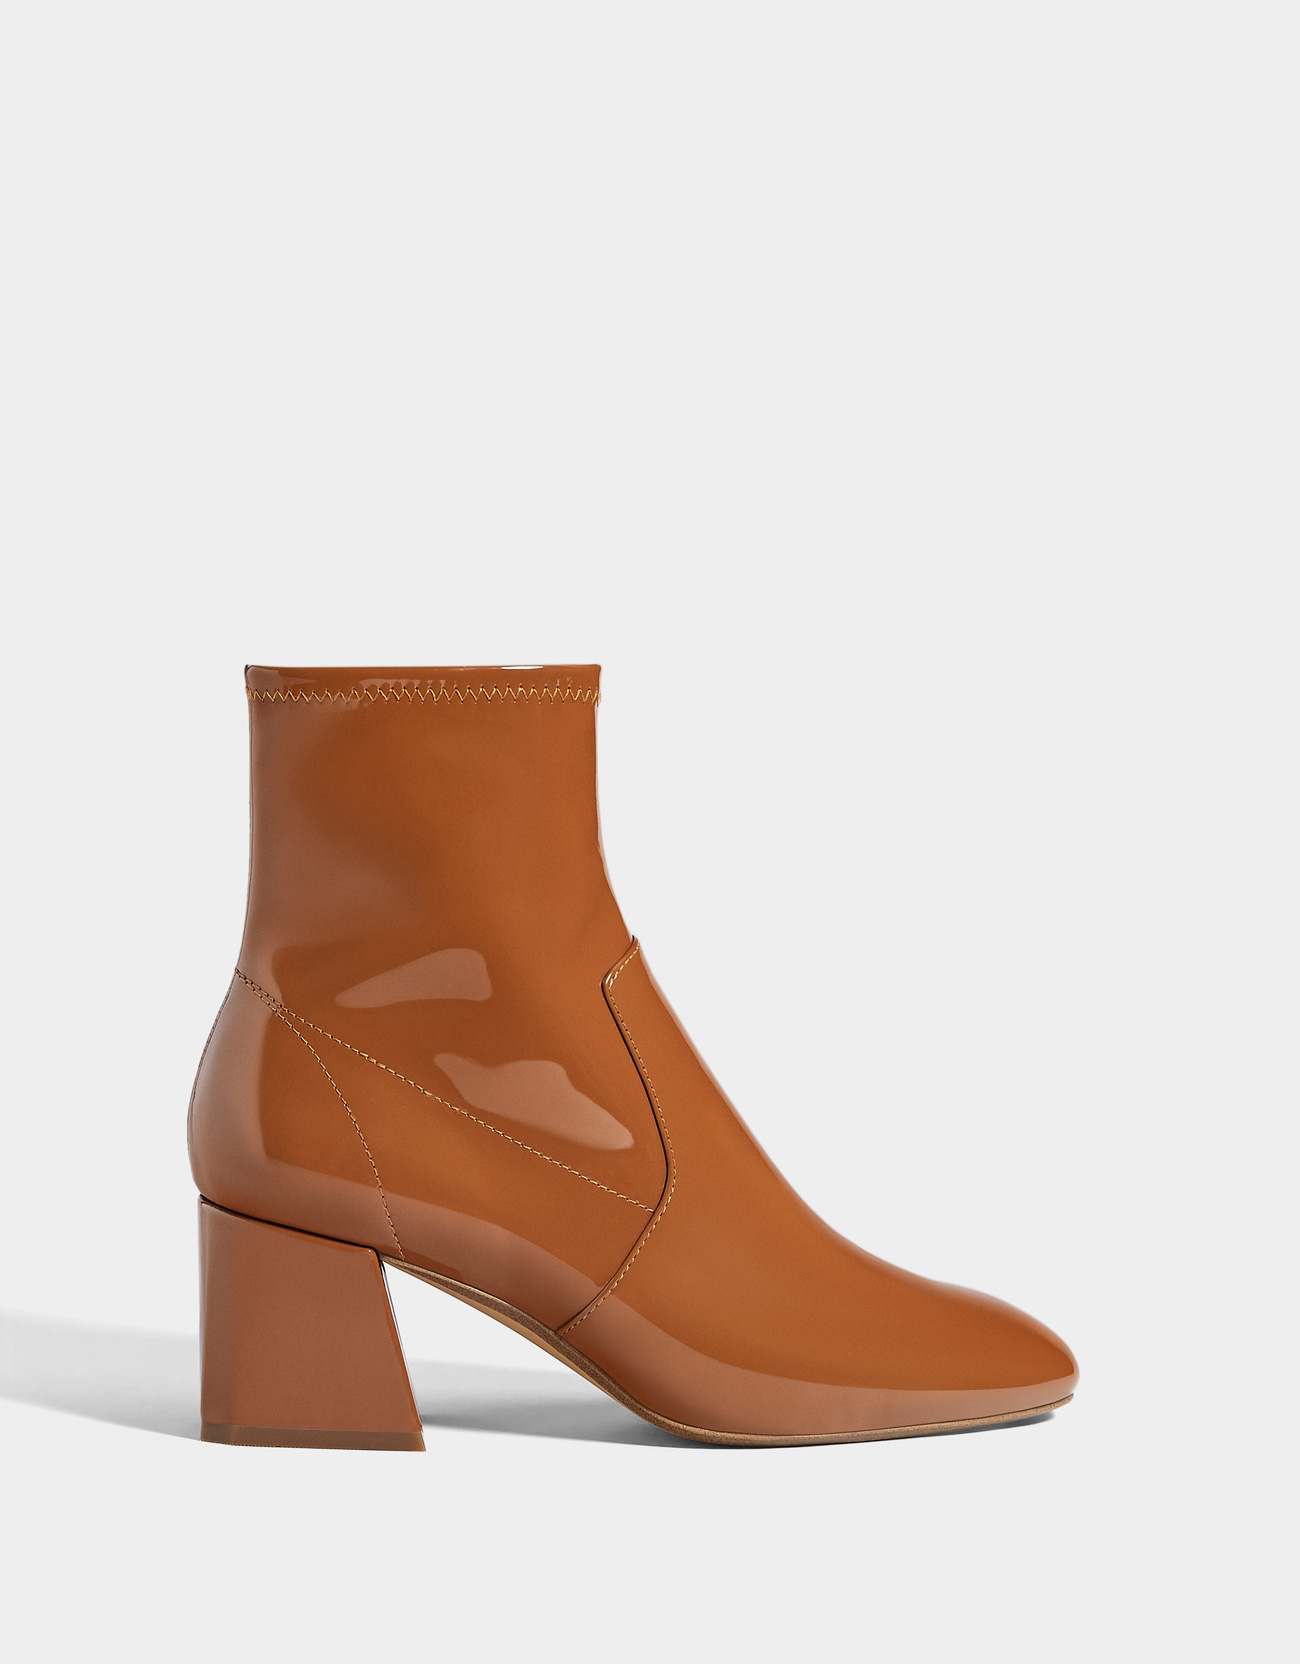 c4c2a28af1f Mid-heel patent finish ankle boots - Boots & Ankle boots - Bershka Bosnia  and Herzegovina